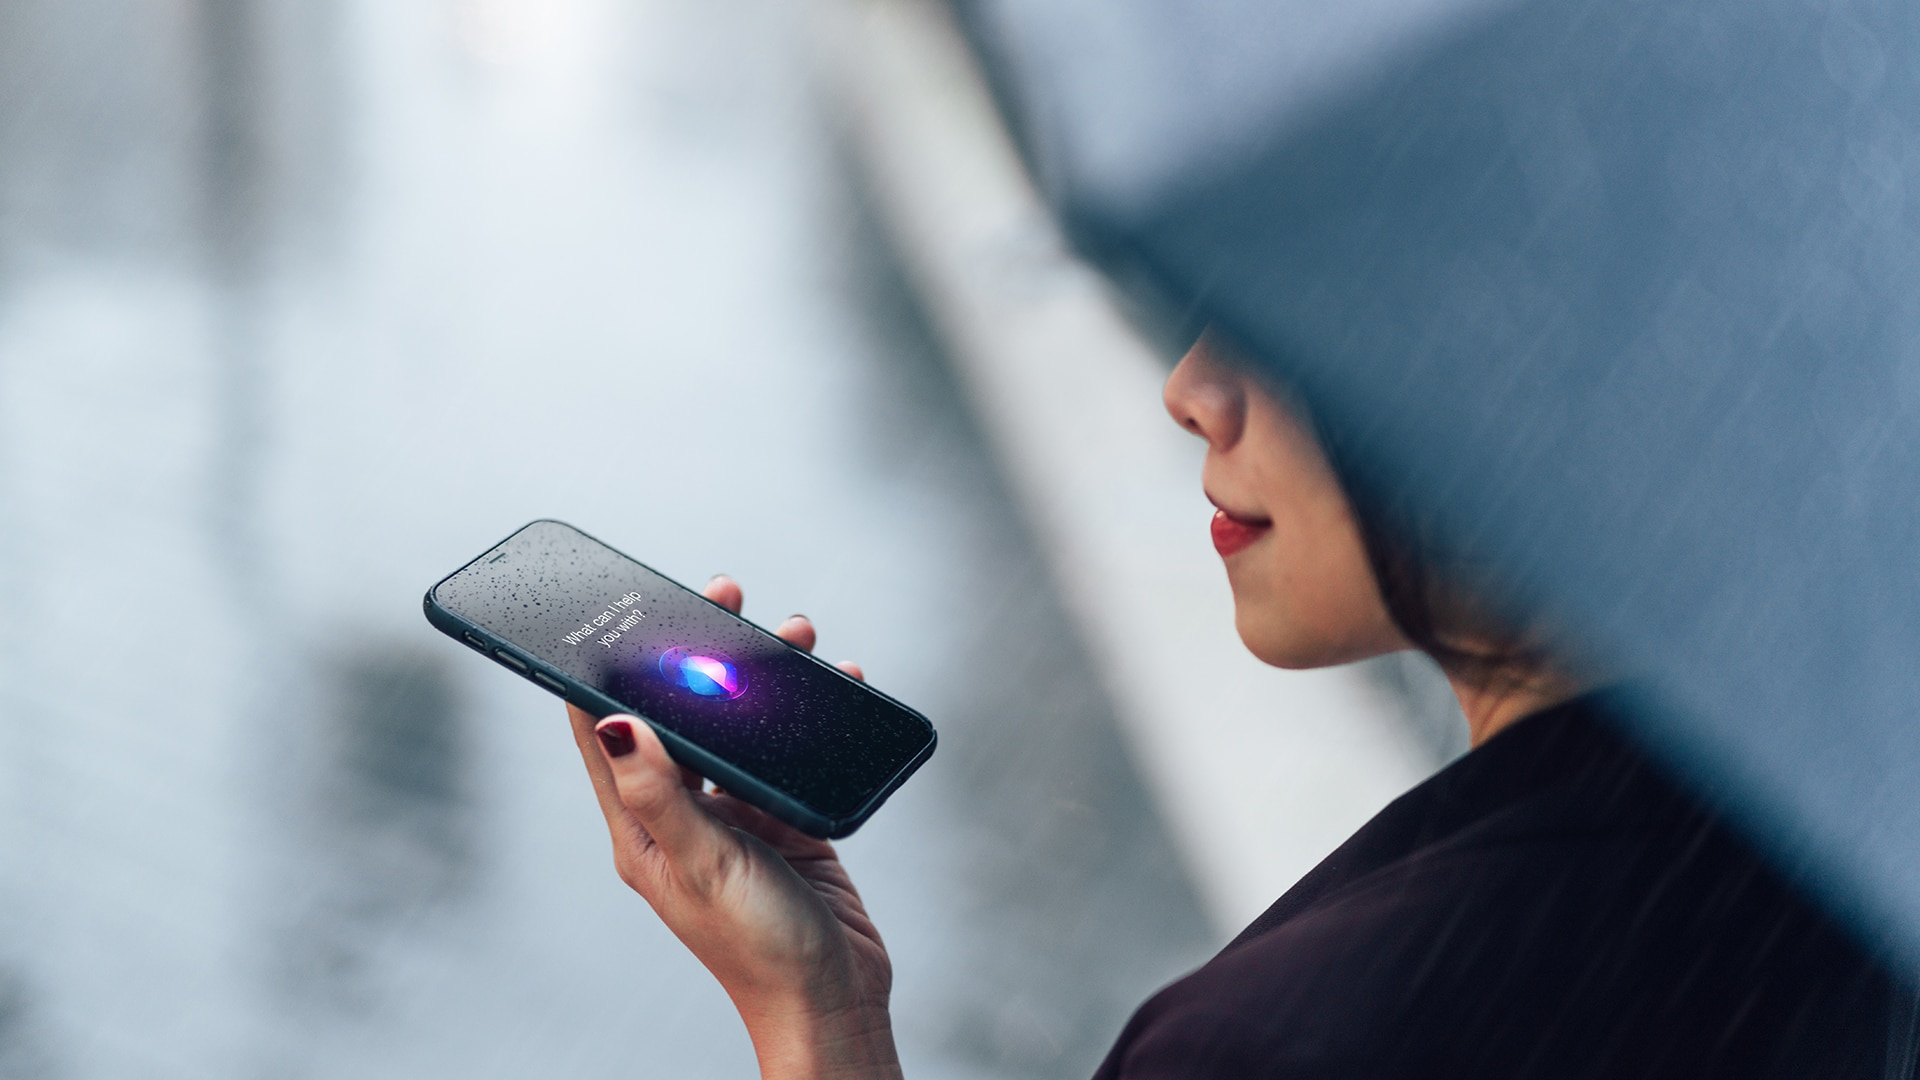 Woman using voice assistant on smartphone in the rain